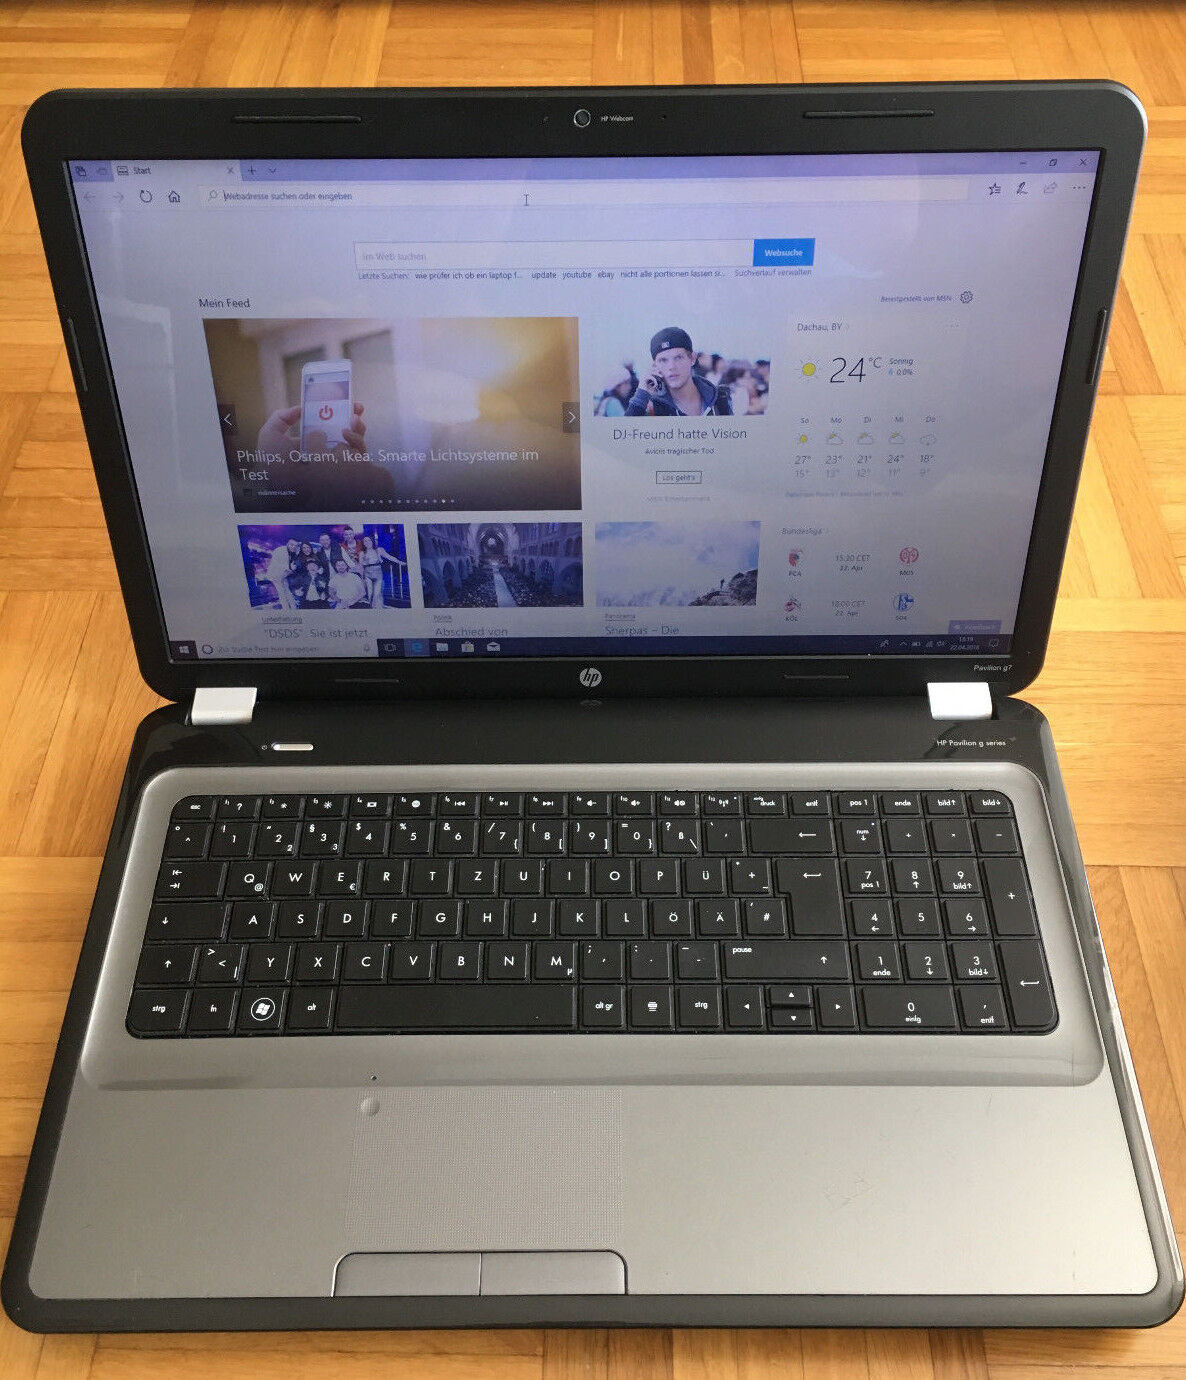 Laptop Notebook HP Pavilion g7 17 Zoll RAM 4GB, WLAN, Windows 10 Original